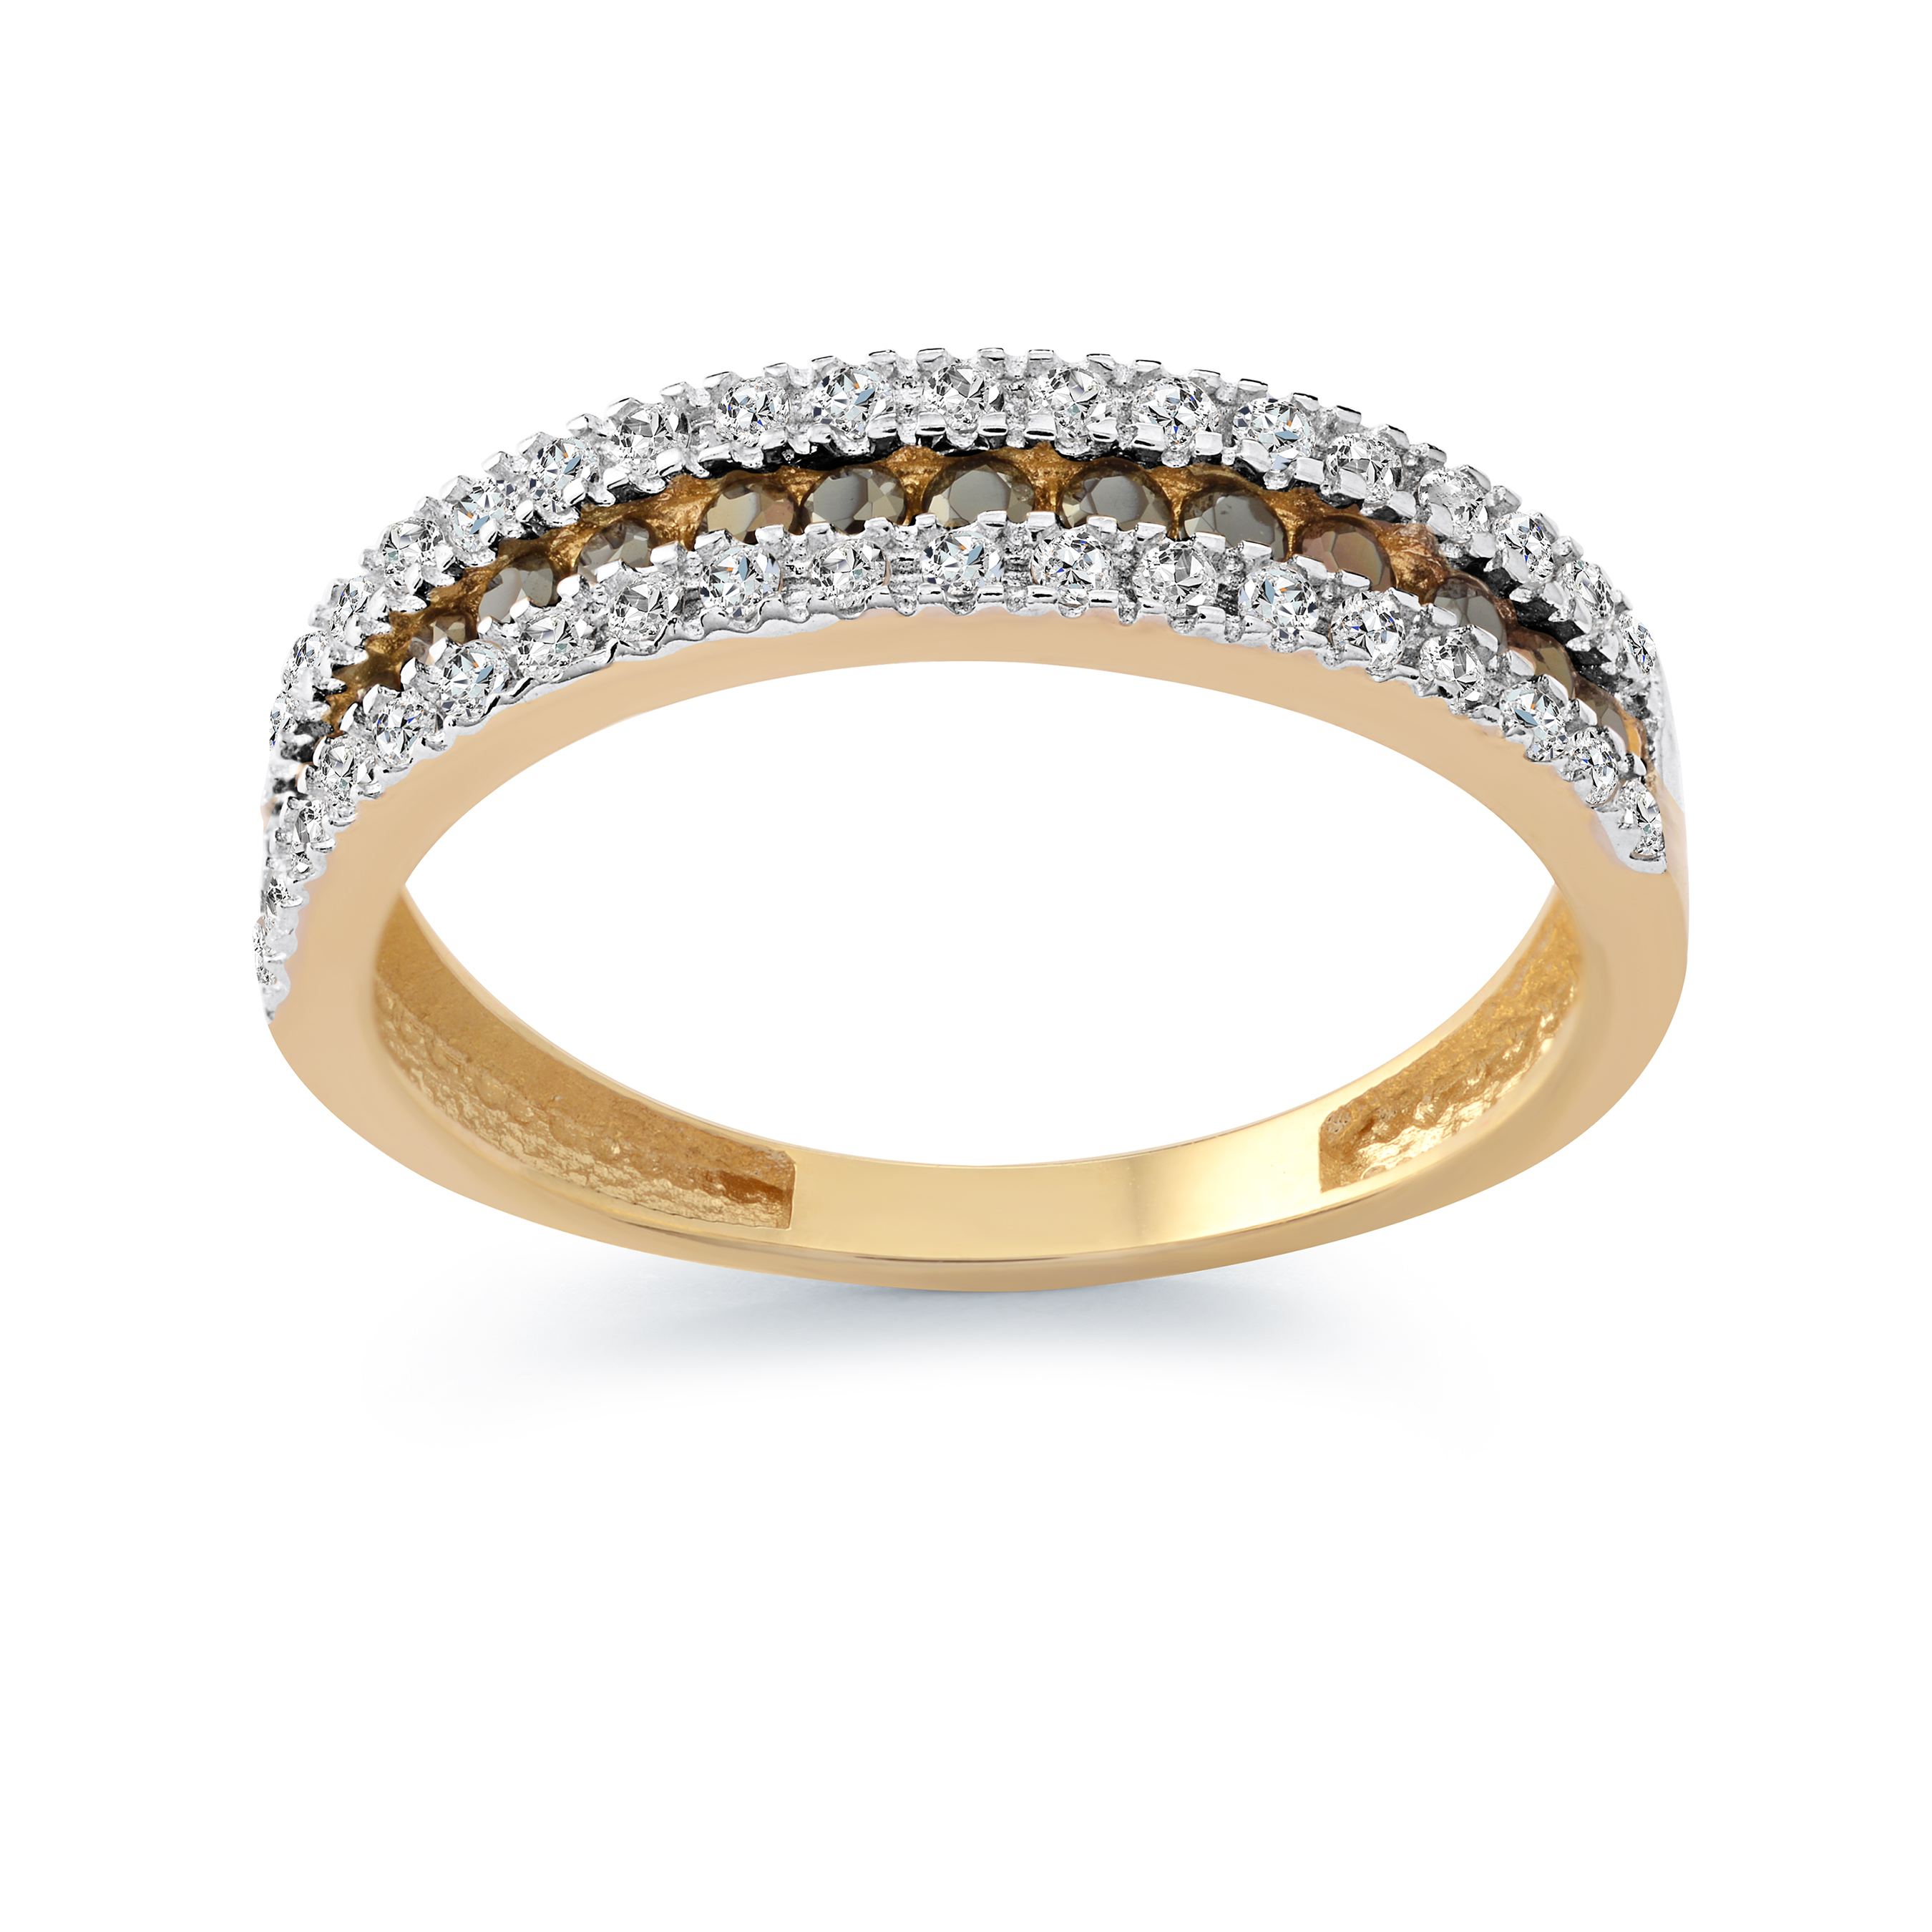 Women's ring - 10K yellow Gold & Black and white cubic zirconia